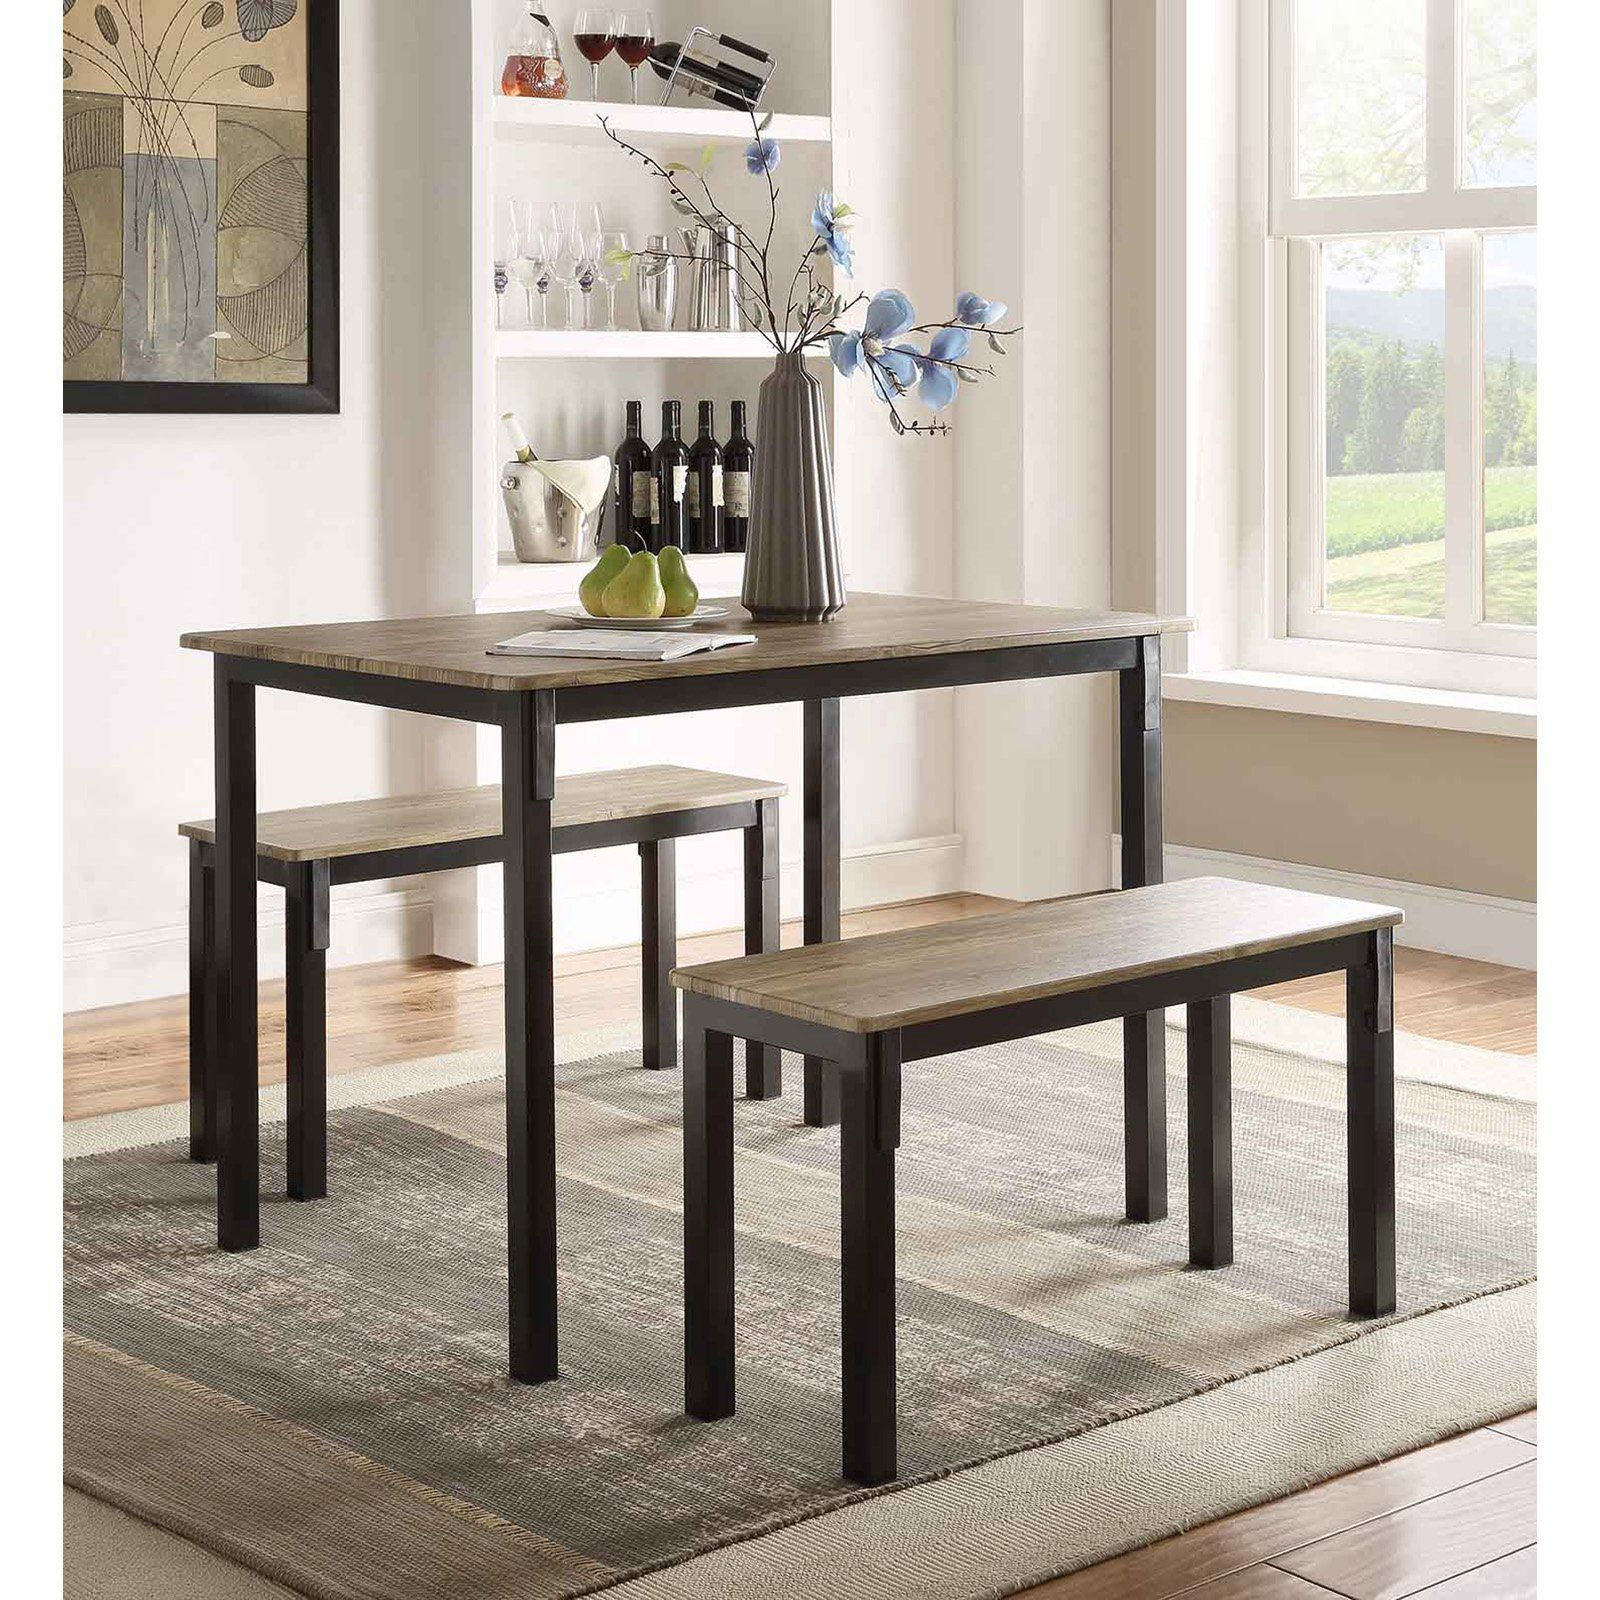 4d Concepts Boltzero 3 Piece Dining Table Set In 2019 Indy 3